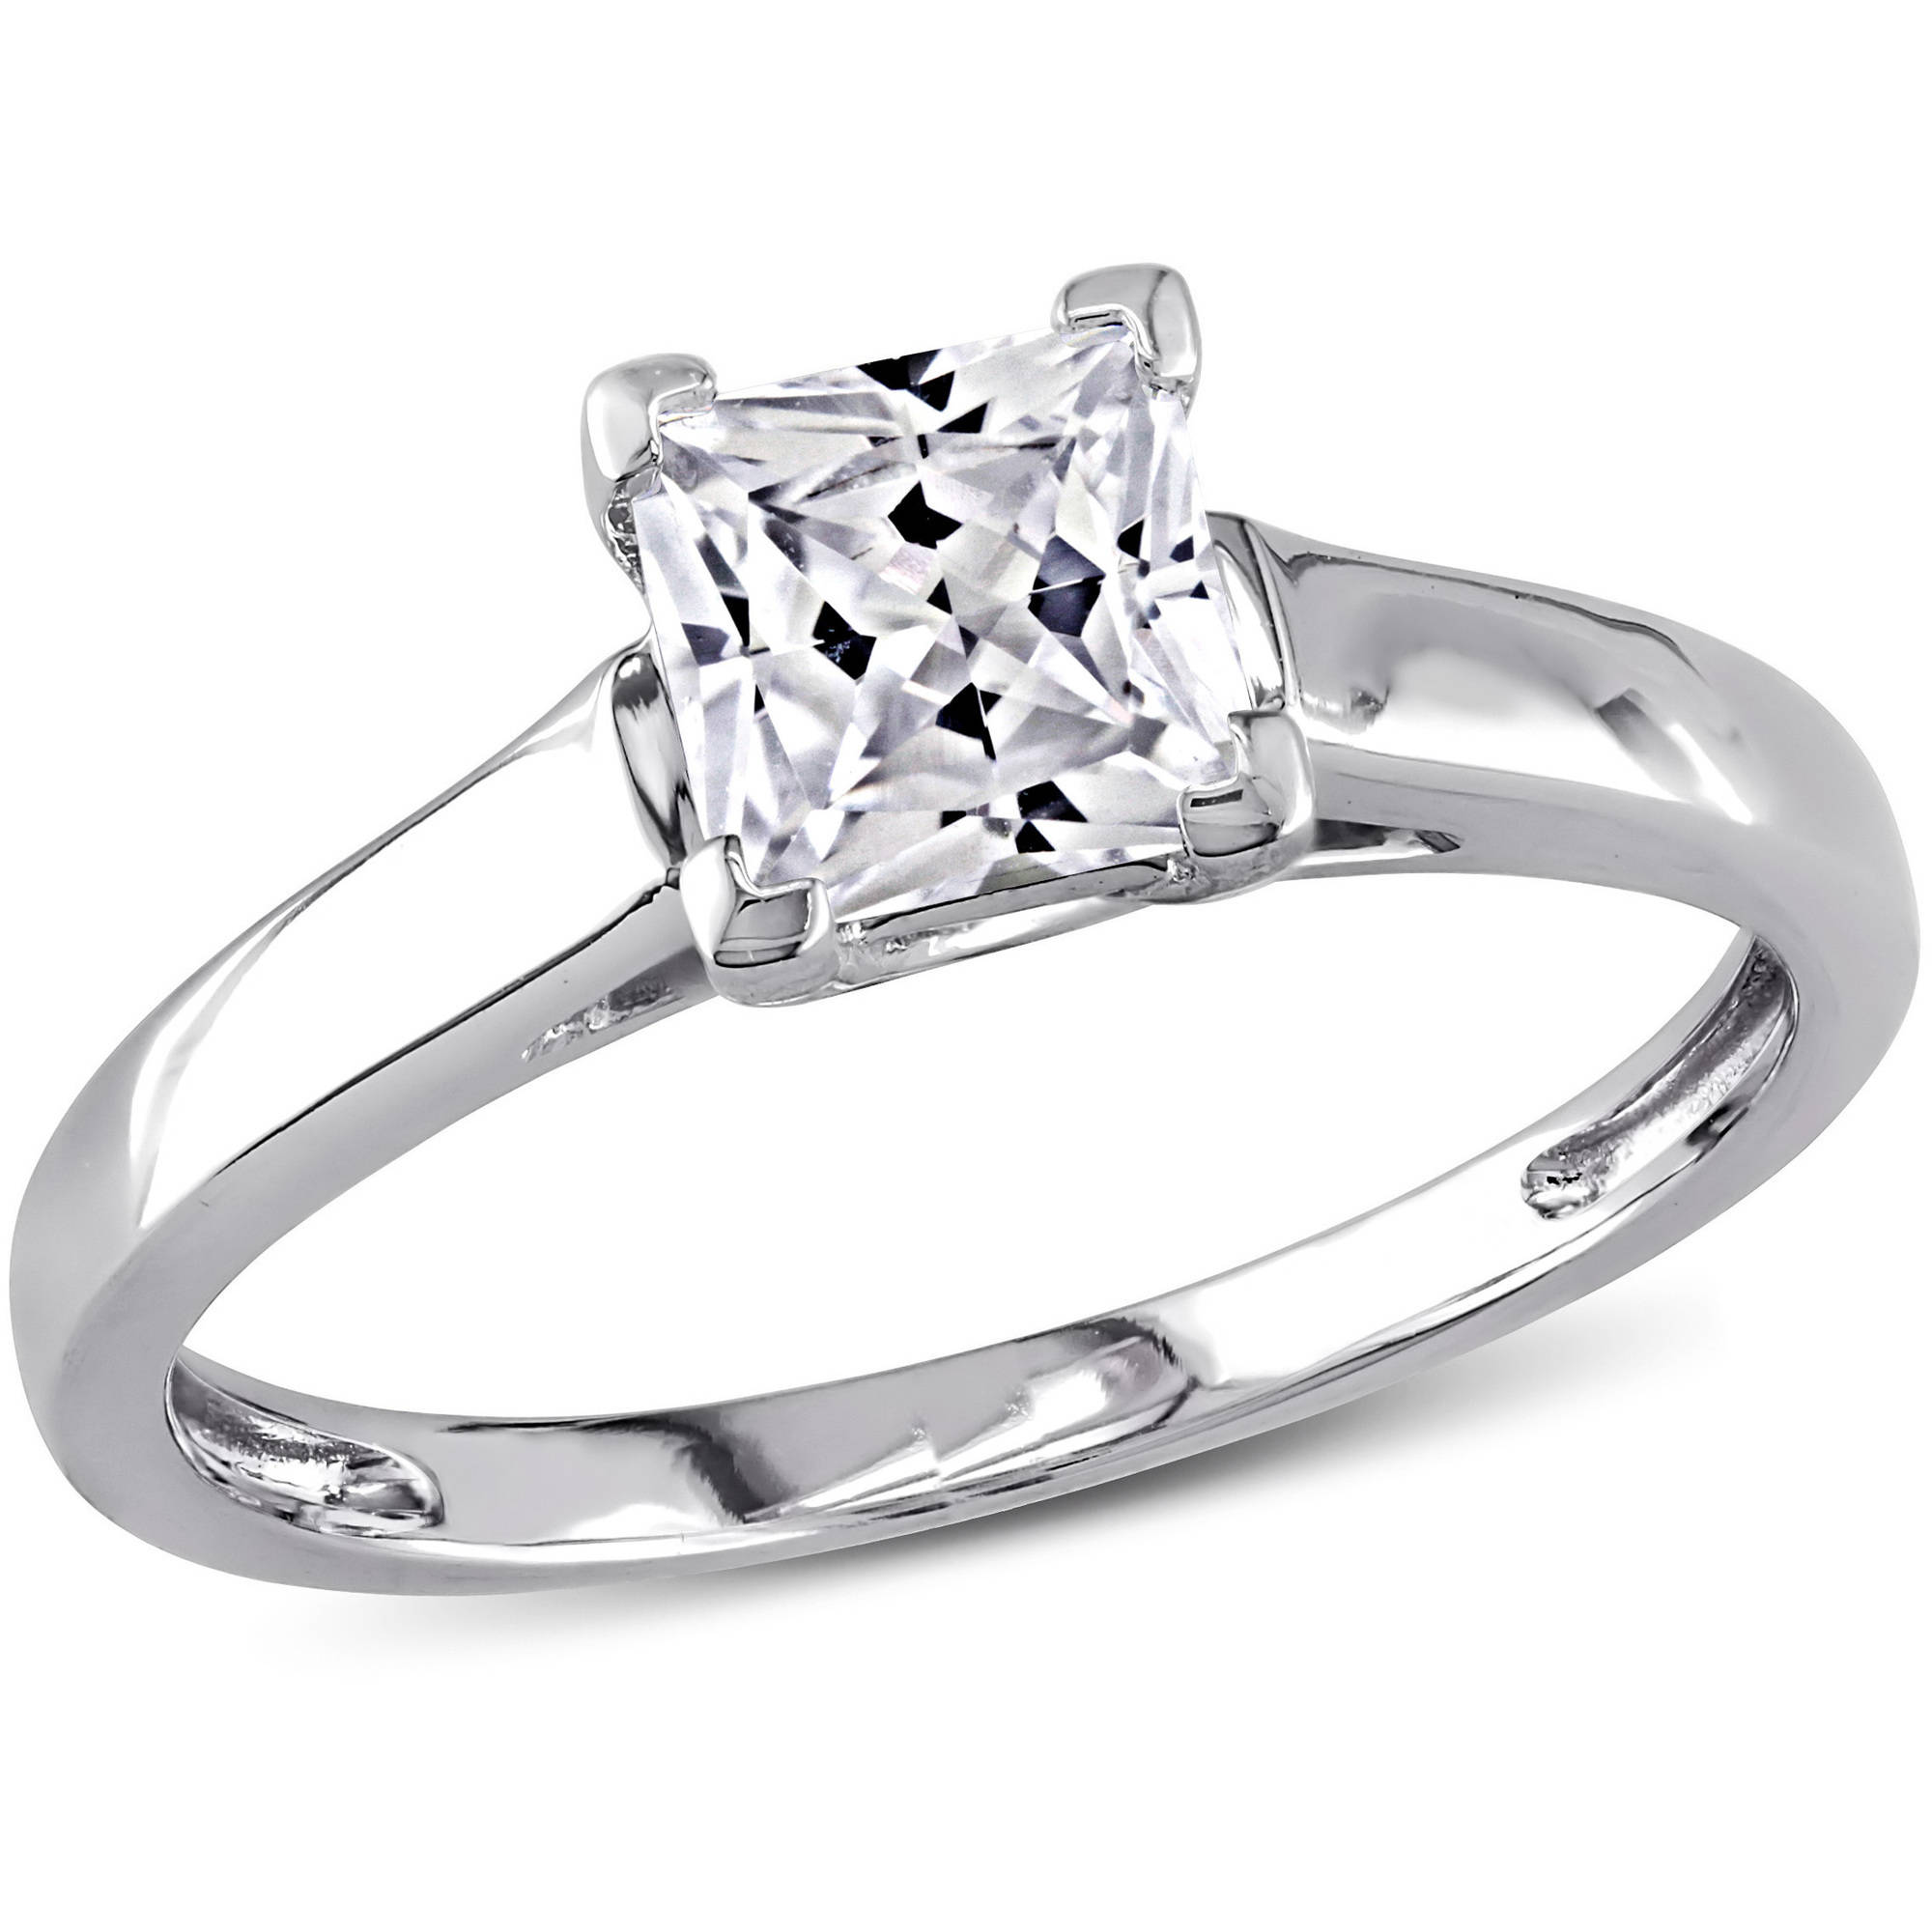 Are Walmart Wedding Rings Fake : walmart, wedding, rings, Engagement, Rings, Walmart.com